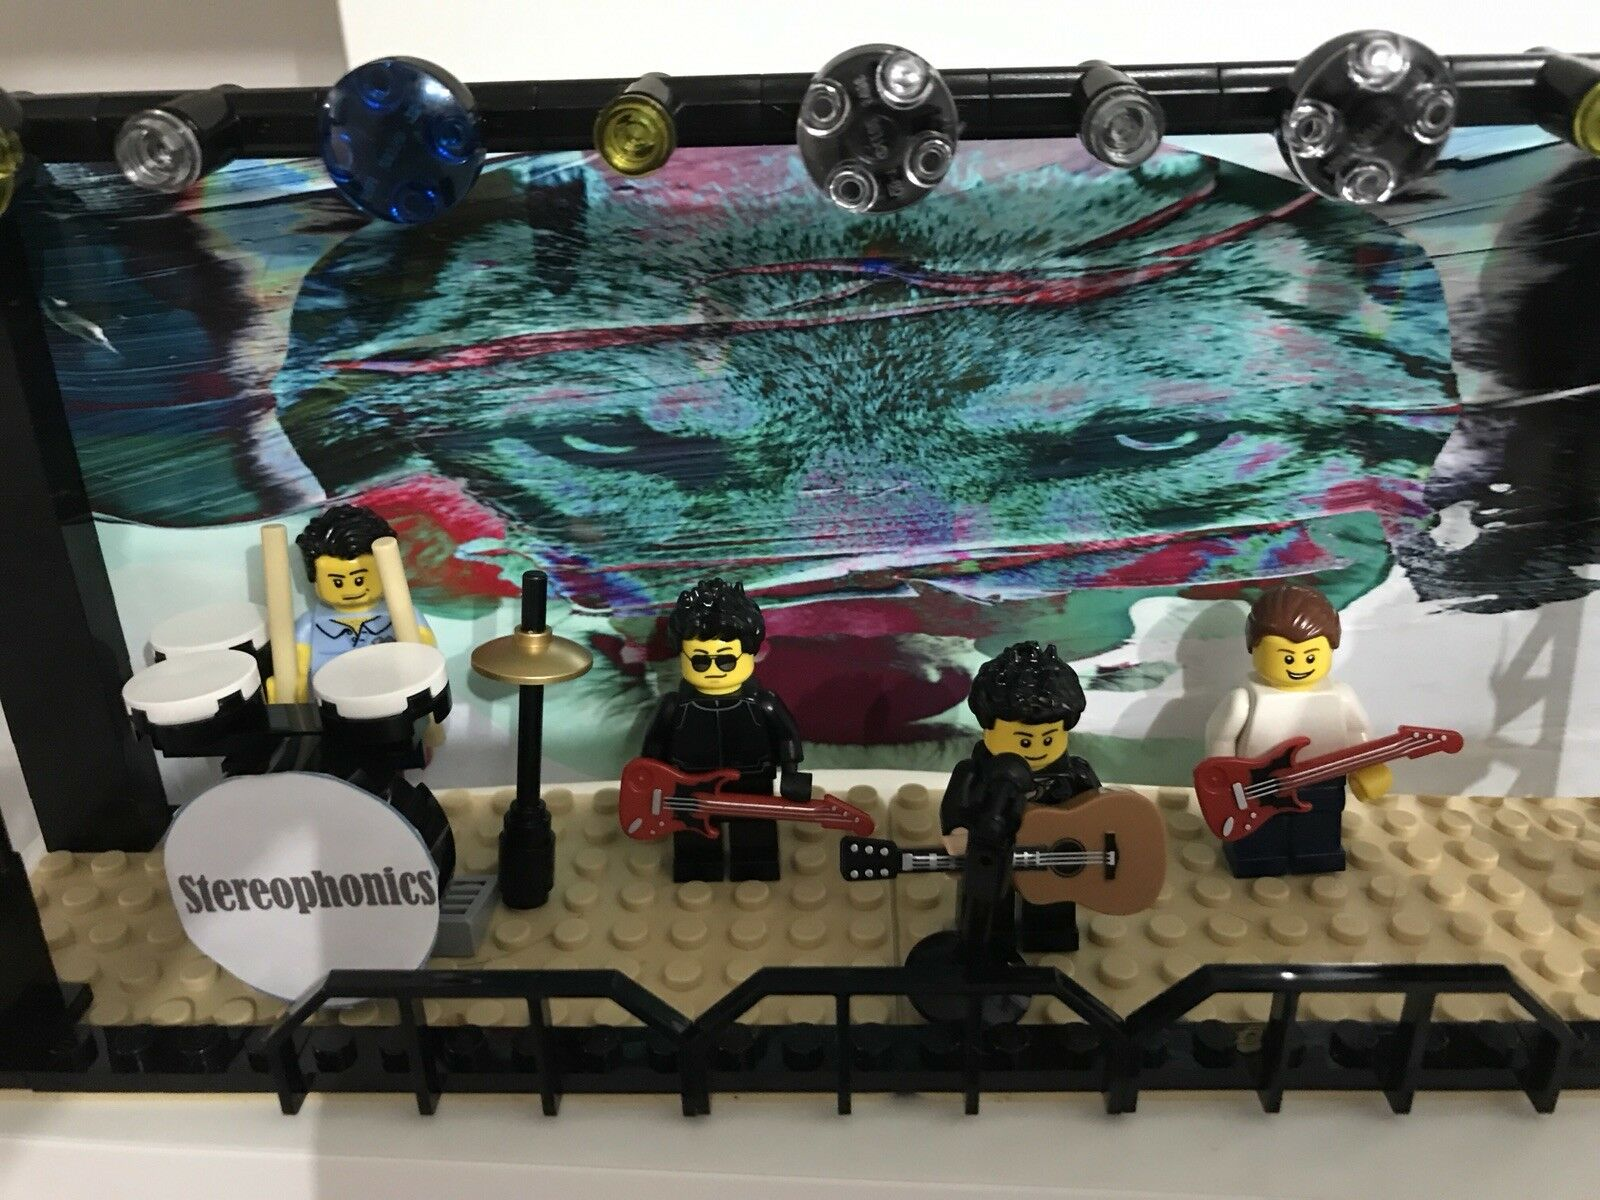 STEREOPHONICS LEGO Minifigures Minifigures Minifigures and Stage. Perfect Birthday Poison Kelly Jones | Terrific Value  761083